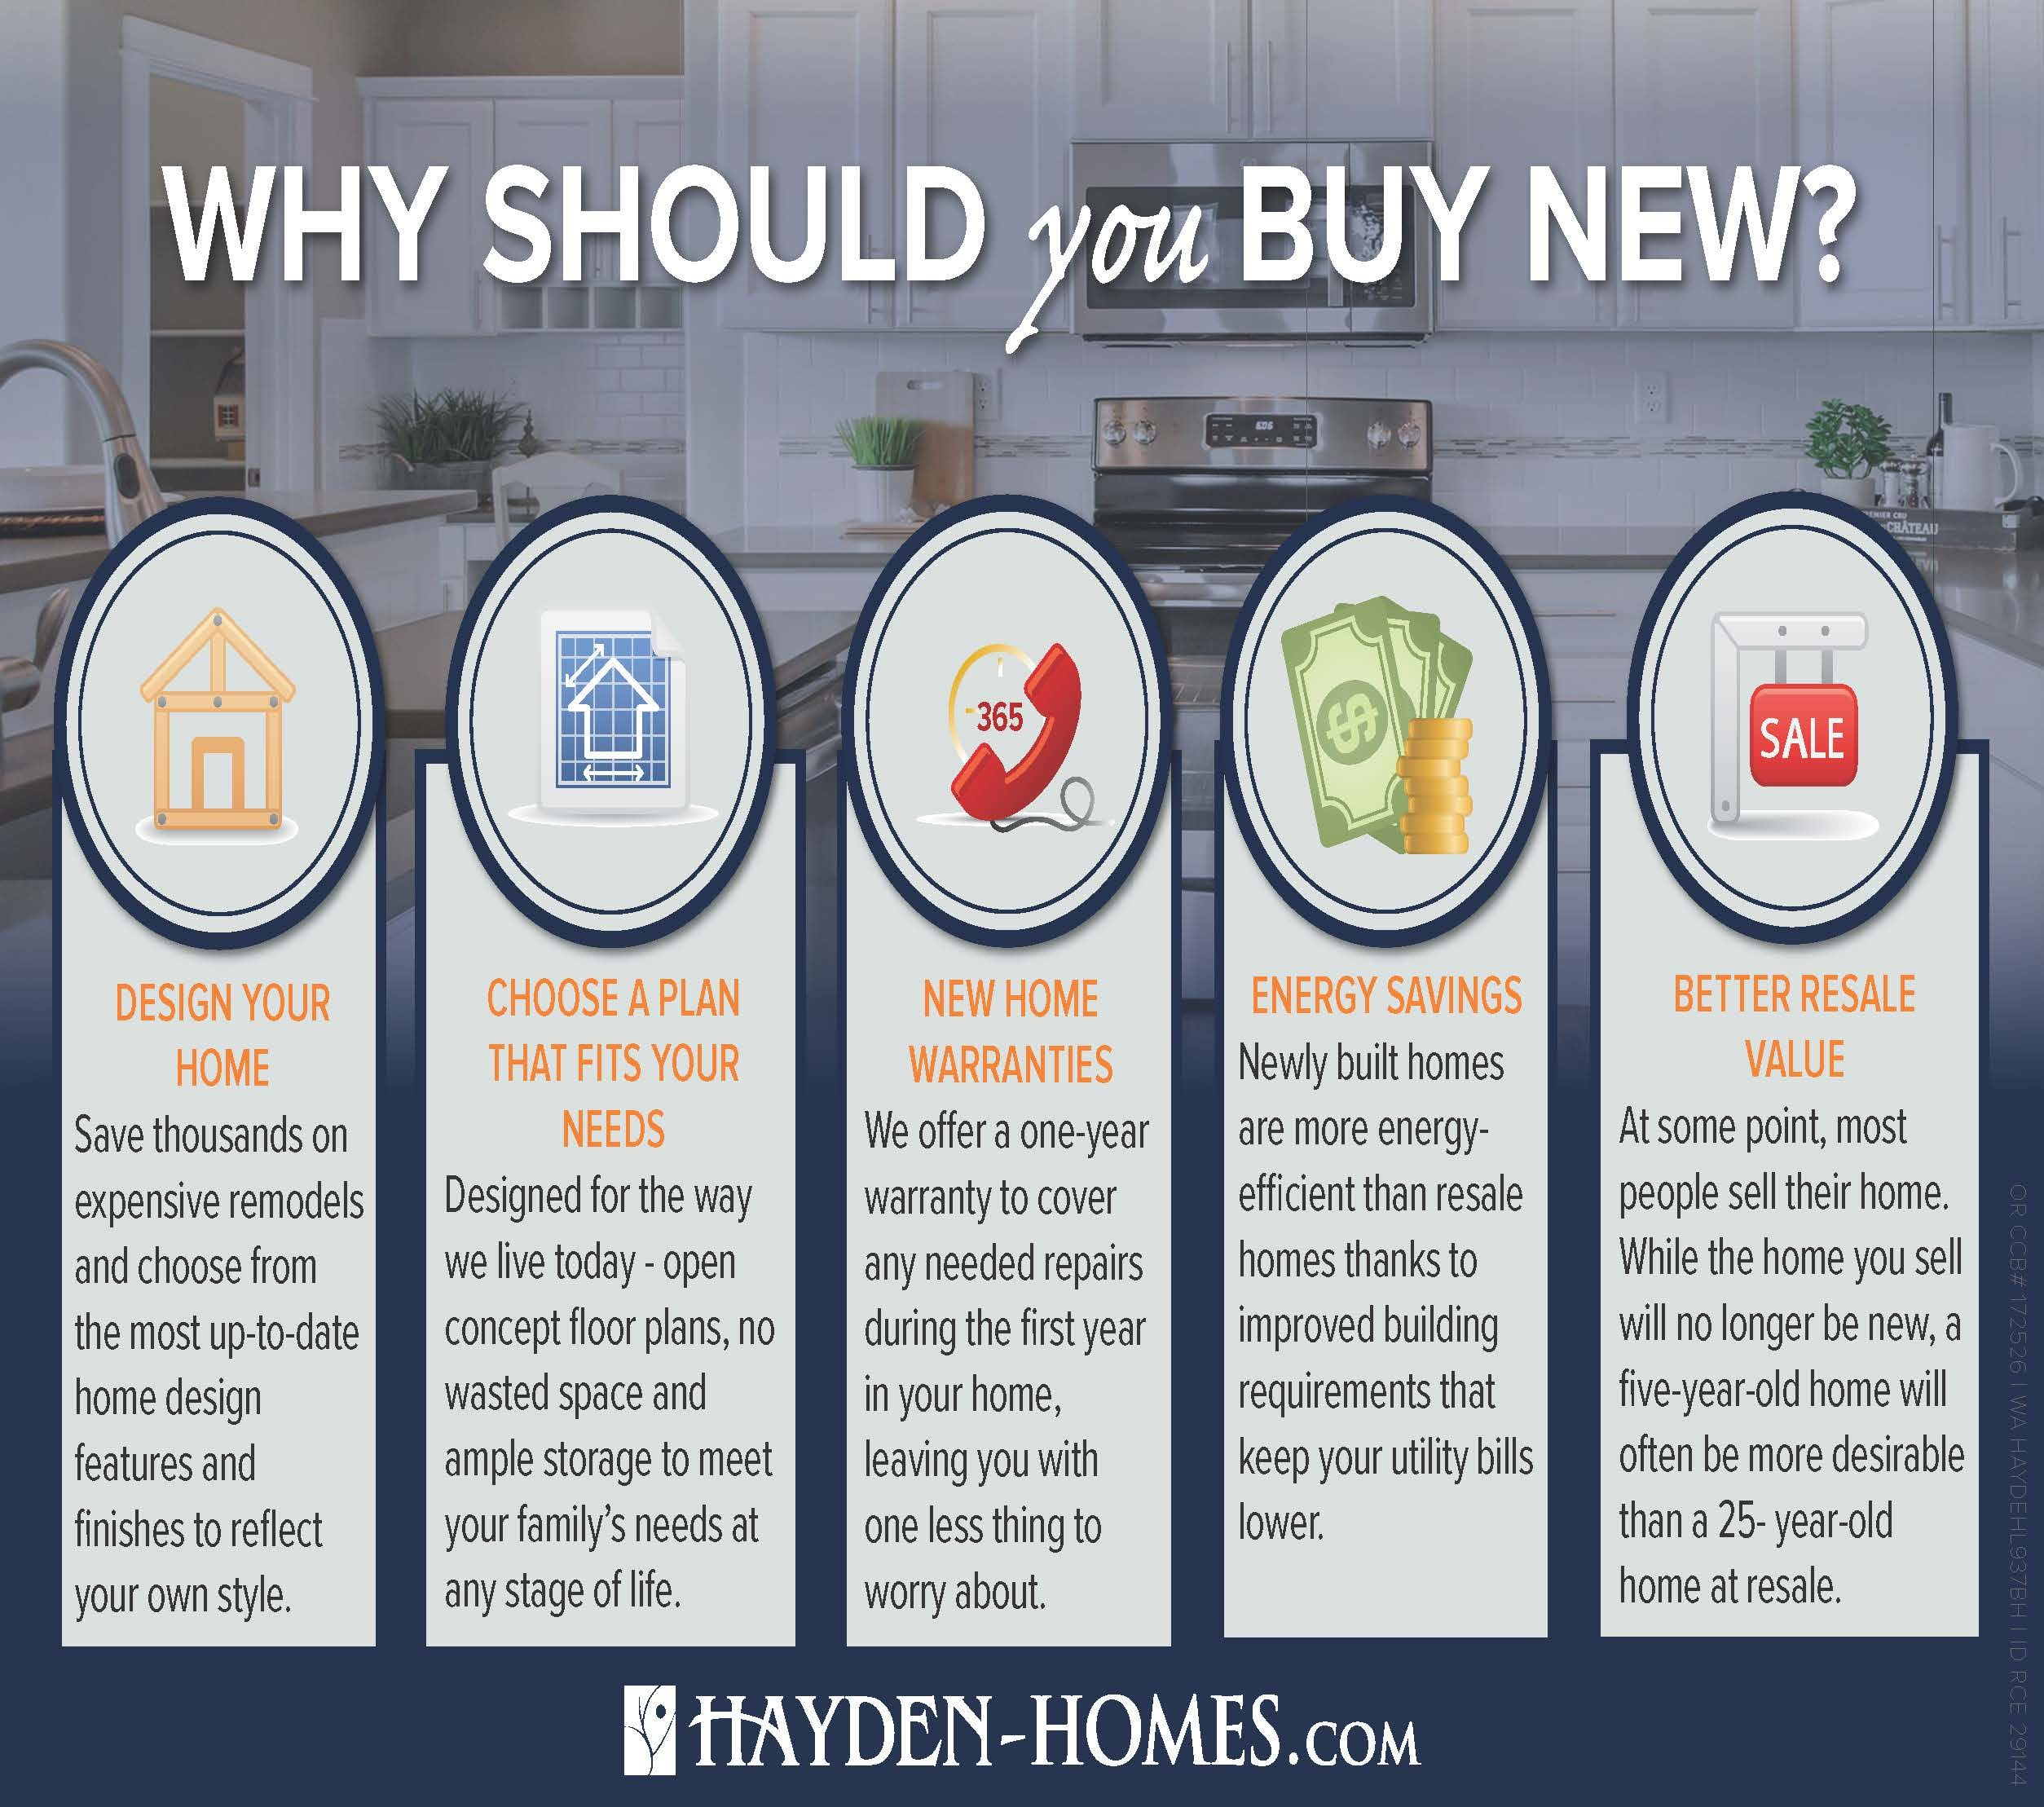 Pin By Hayden Homes On Buying A Home Hayden Homes Home Buying Hayden Homes Make It Simple